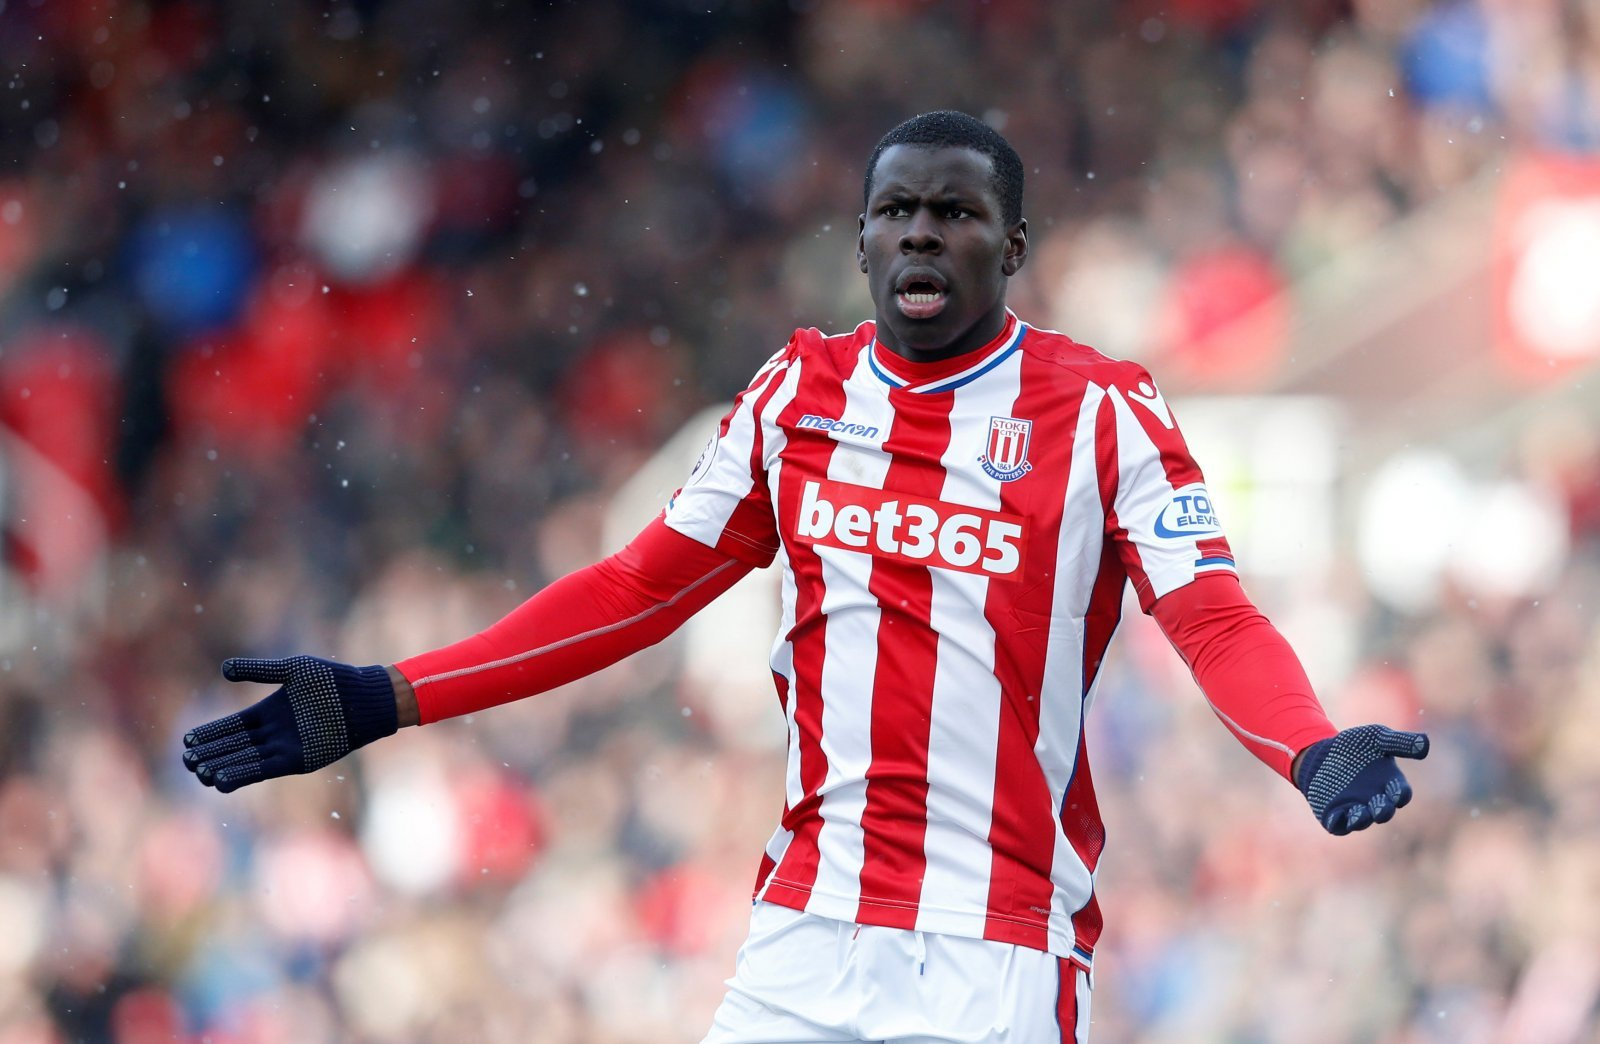 Forget Rojo: Everton are certainly much better served targeting Kurt Zouma